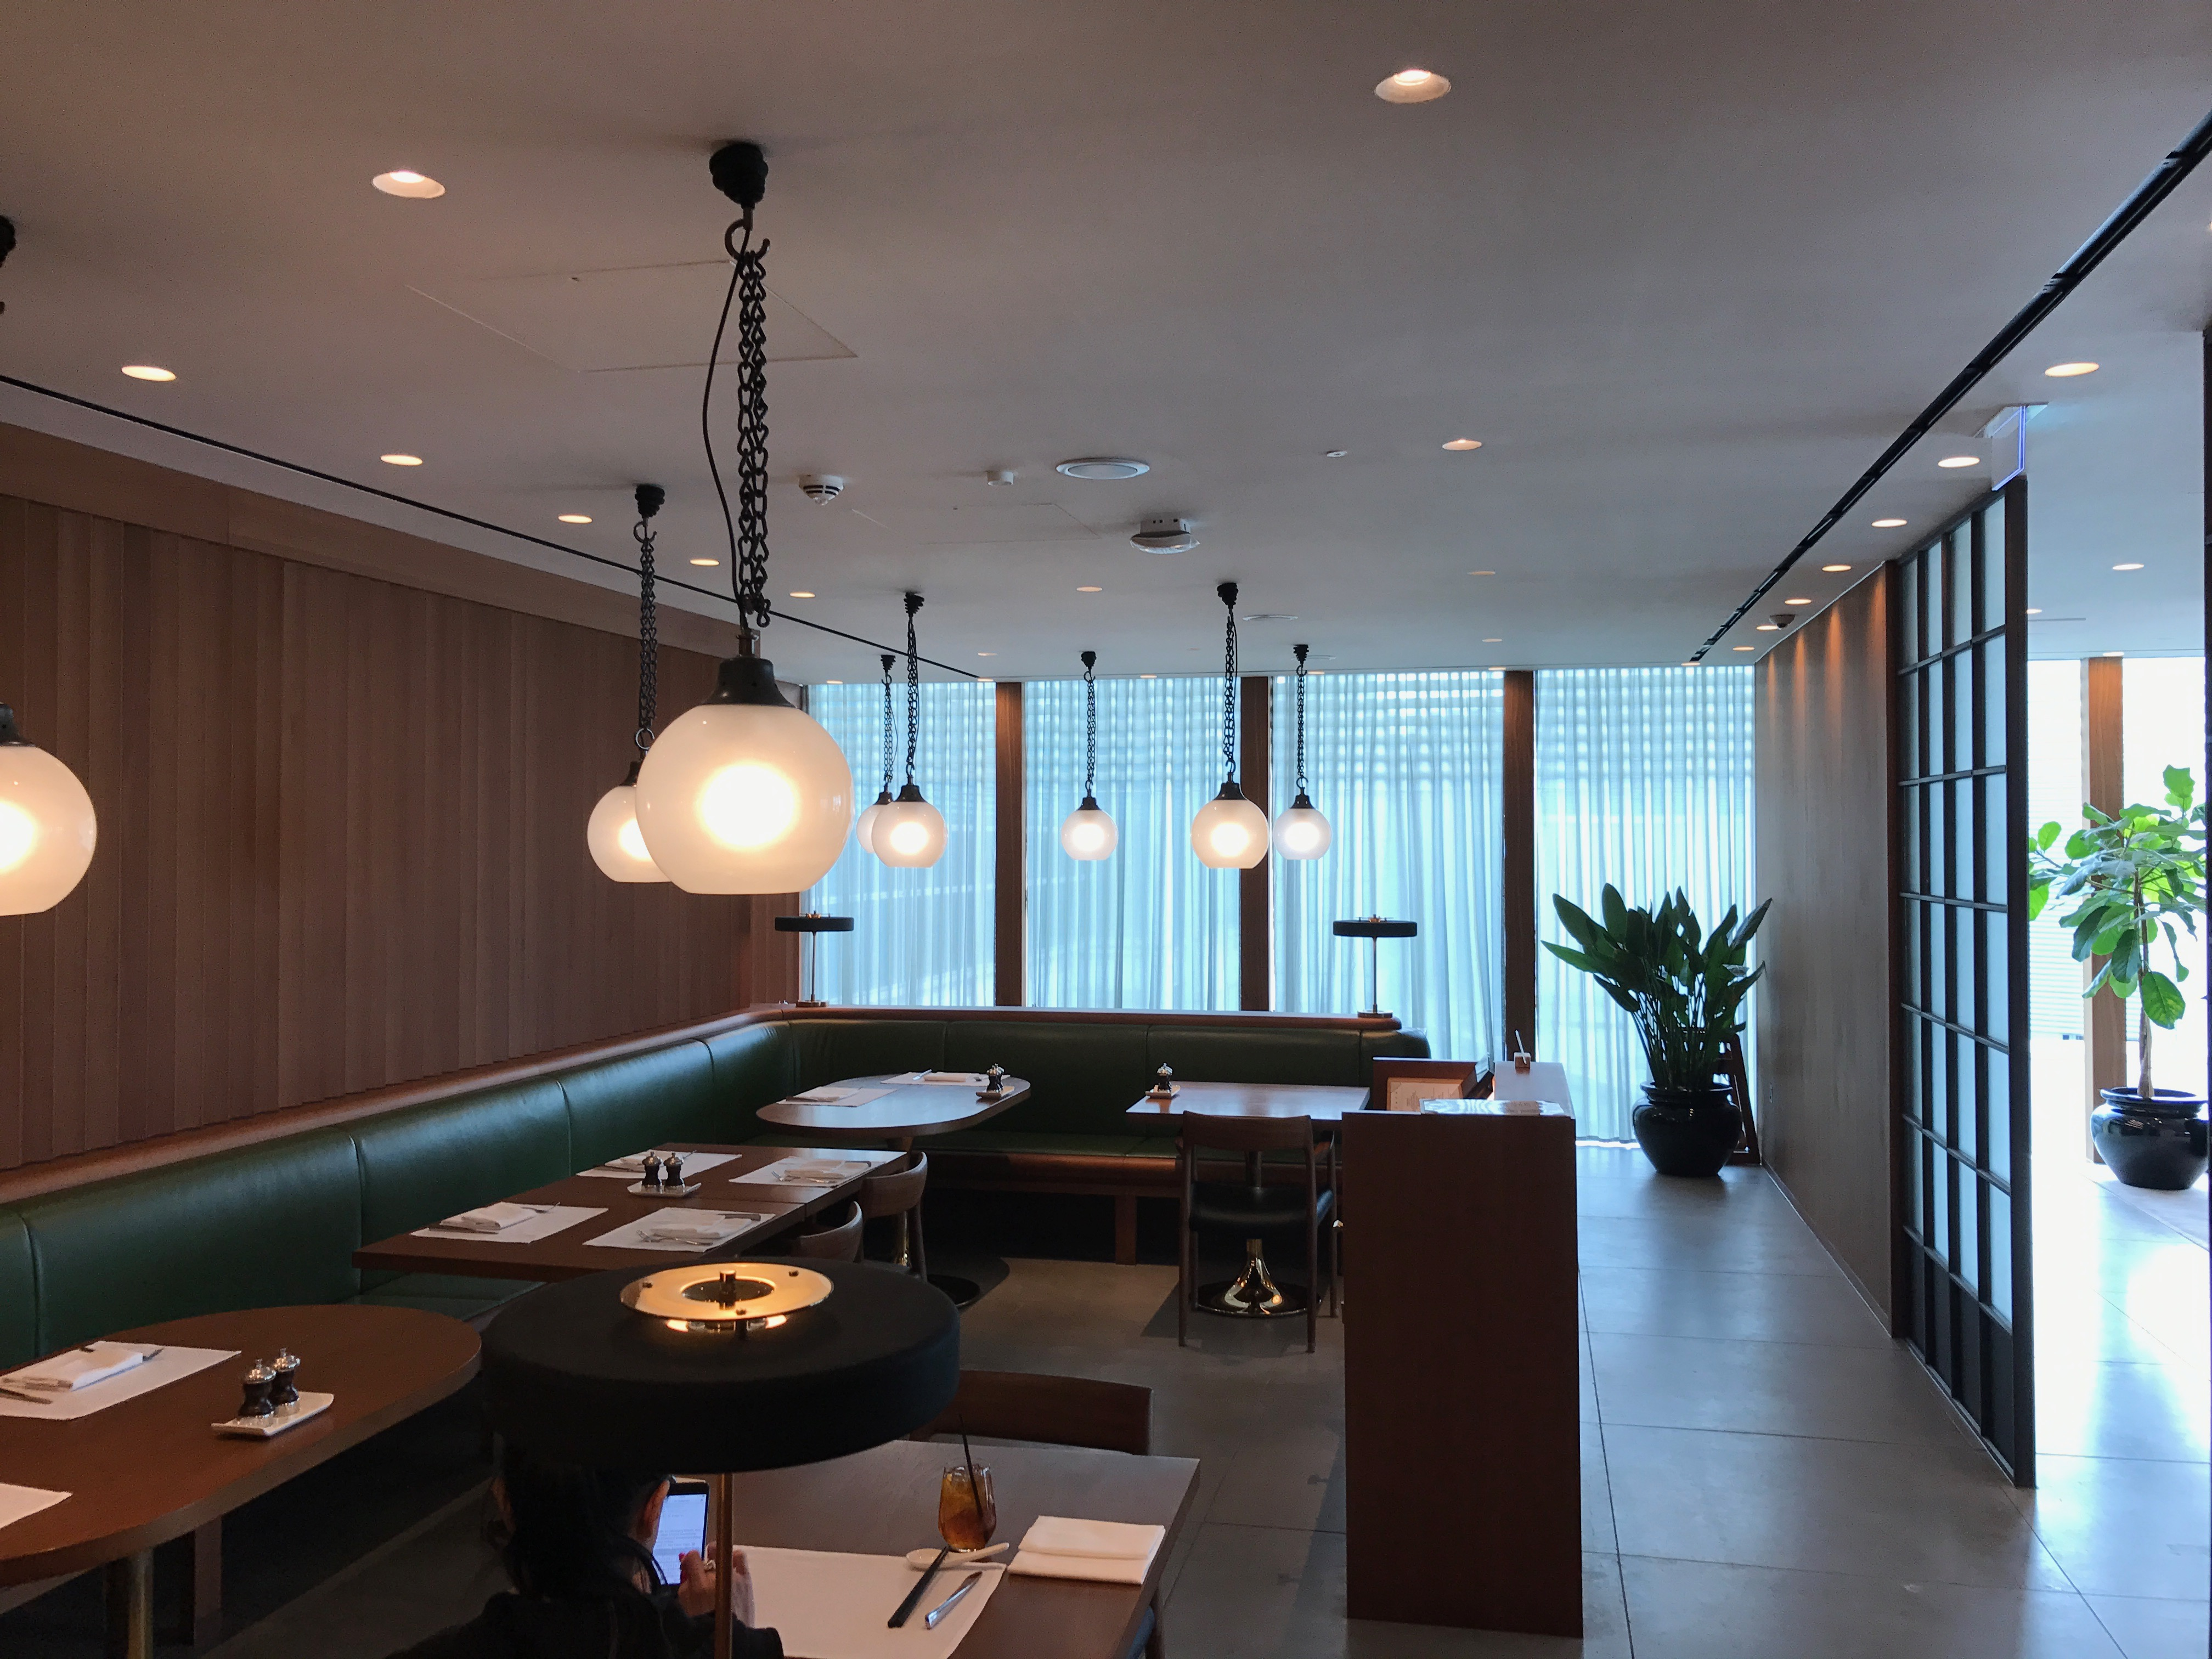 View over the dining area of the cathay pacific first class lounge at Heathrow terminal 3